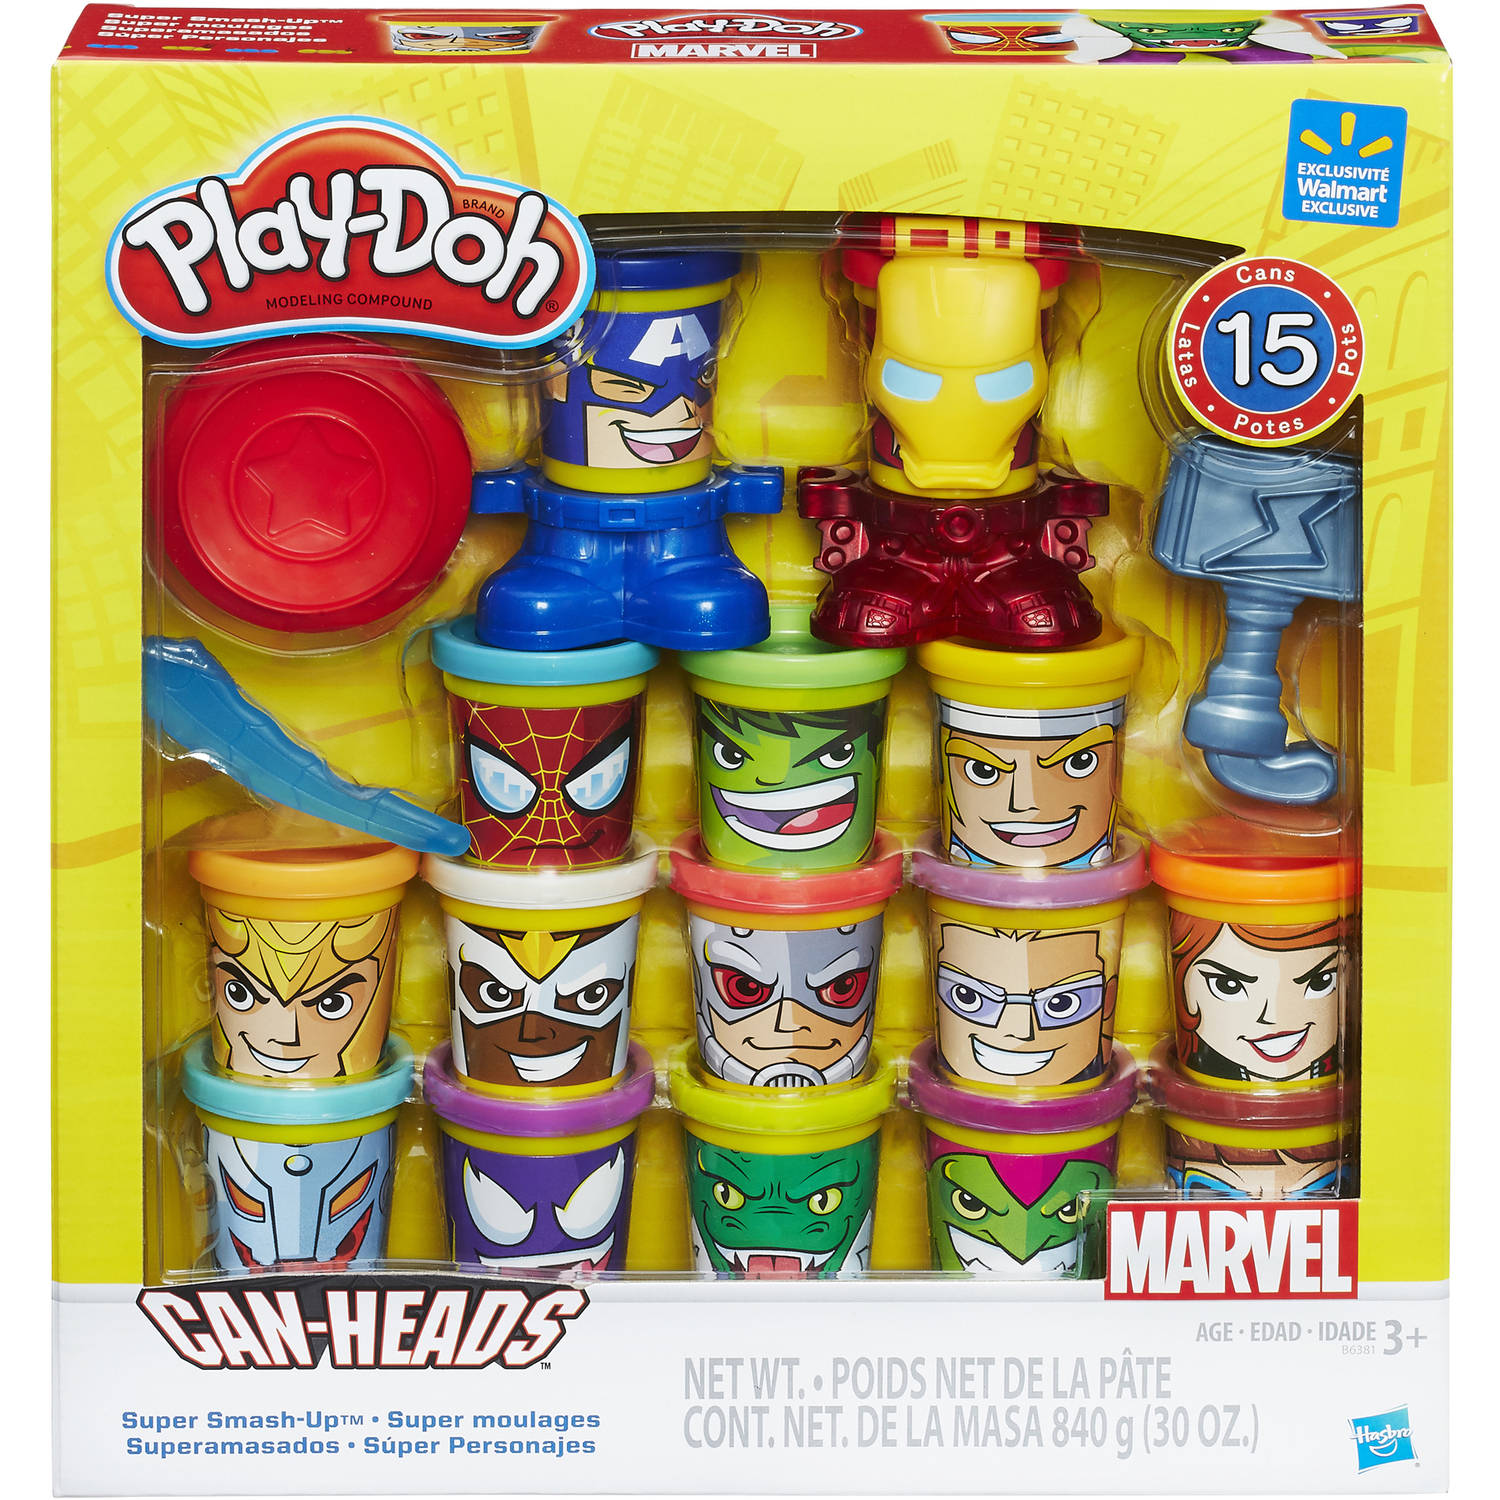 Play-Doh Marvel Super Smash-Up with Can-Heads